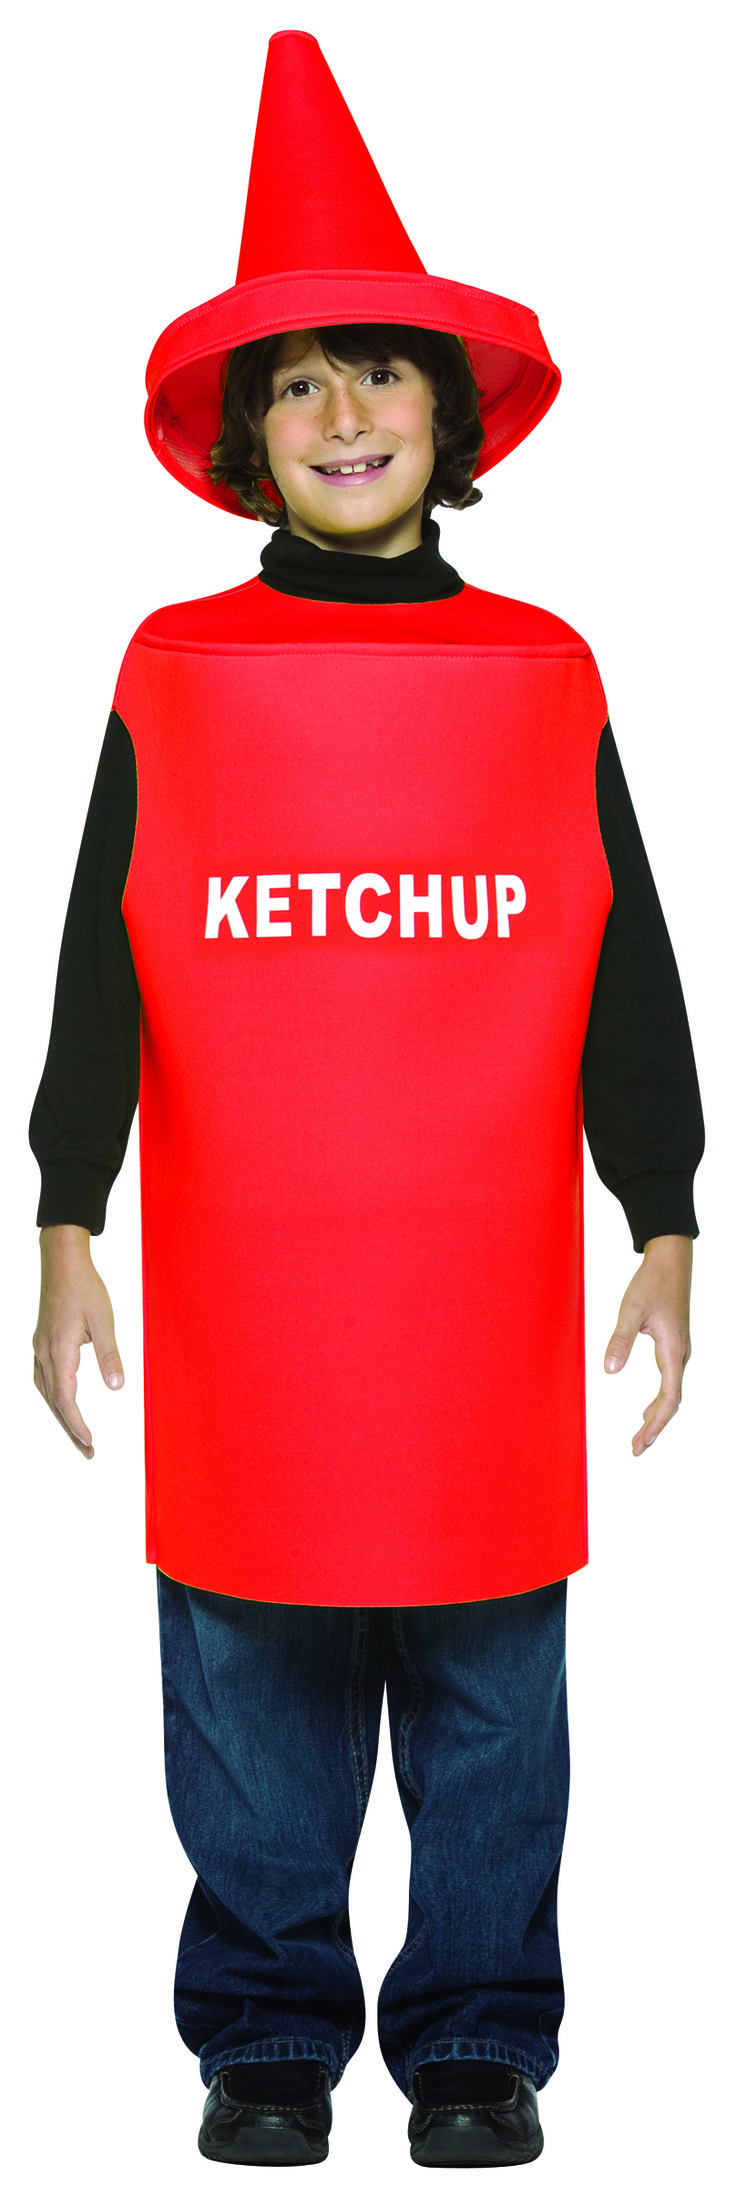 #975 Boy 7-10 Squeeze into a ketchup costume for your summer barbecue, goes great with mustard! #barbecue #costume #summerevent